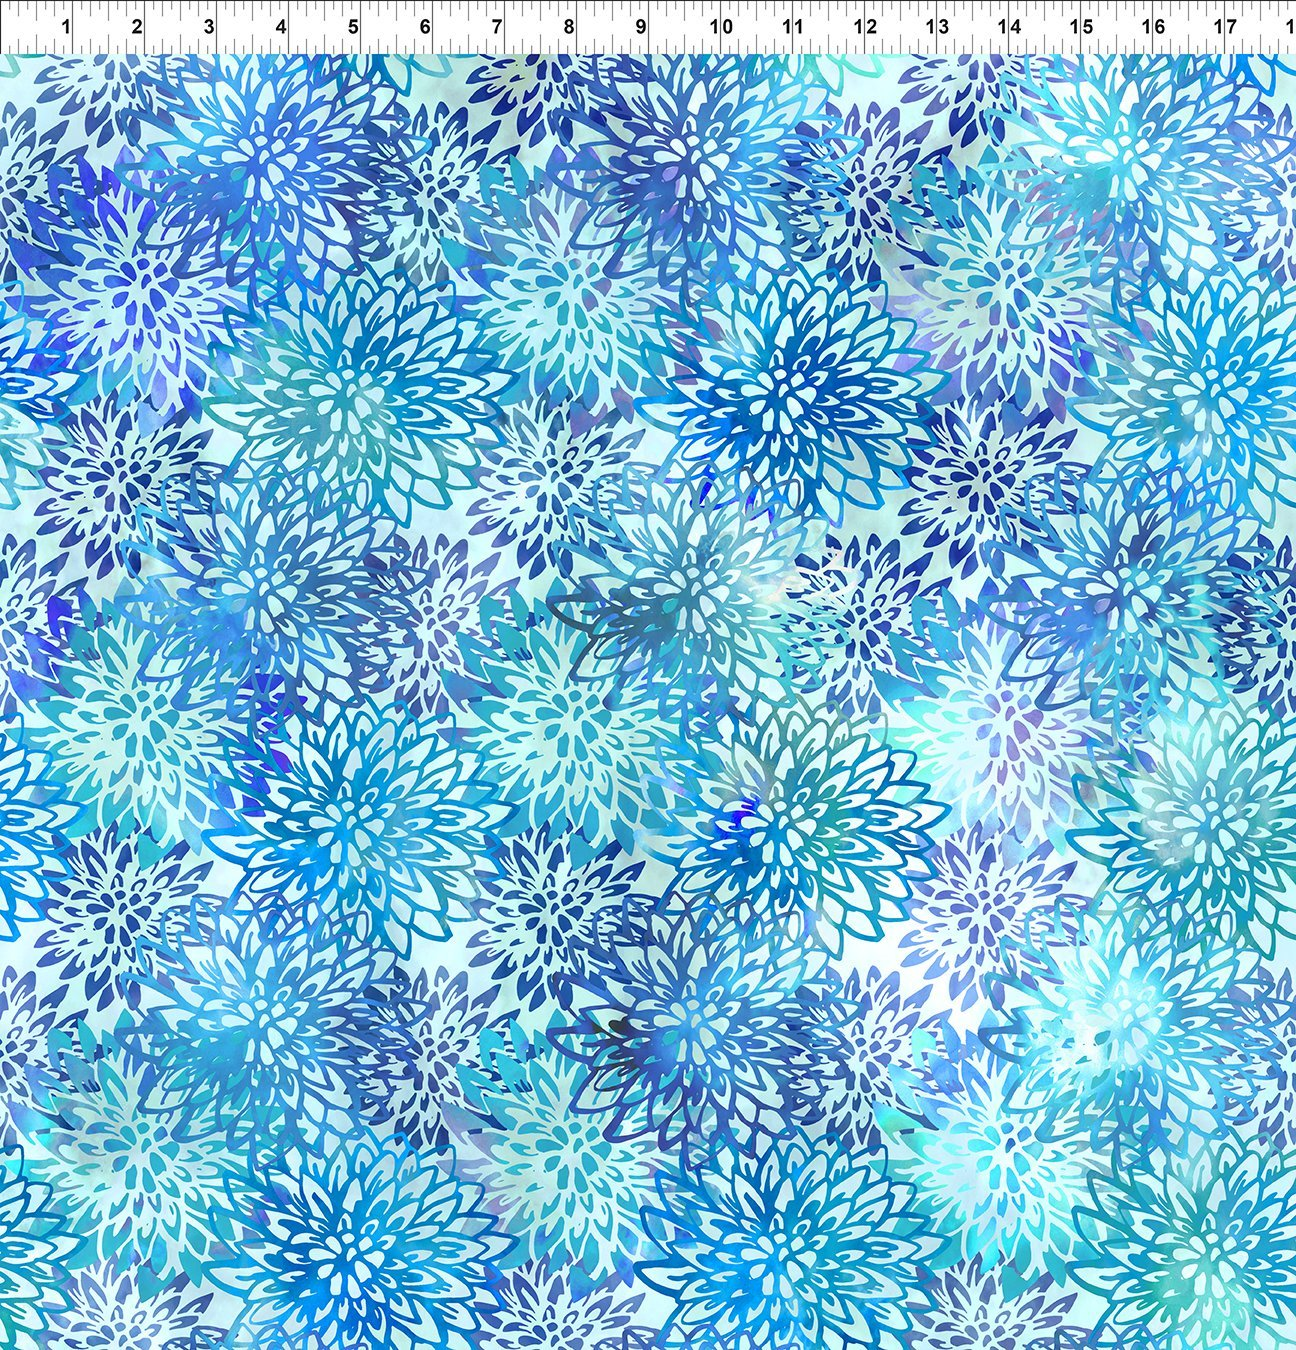 5HVN-2 Haven - Chrysanthemums - Blue by Jason Yenter for In The Beginning Fabric